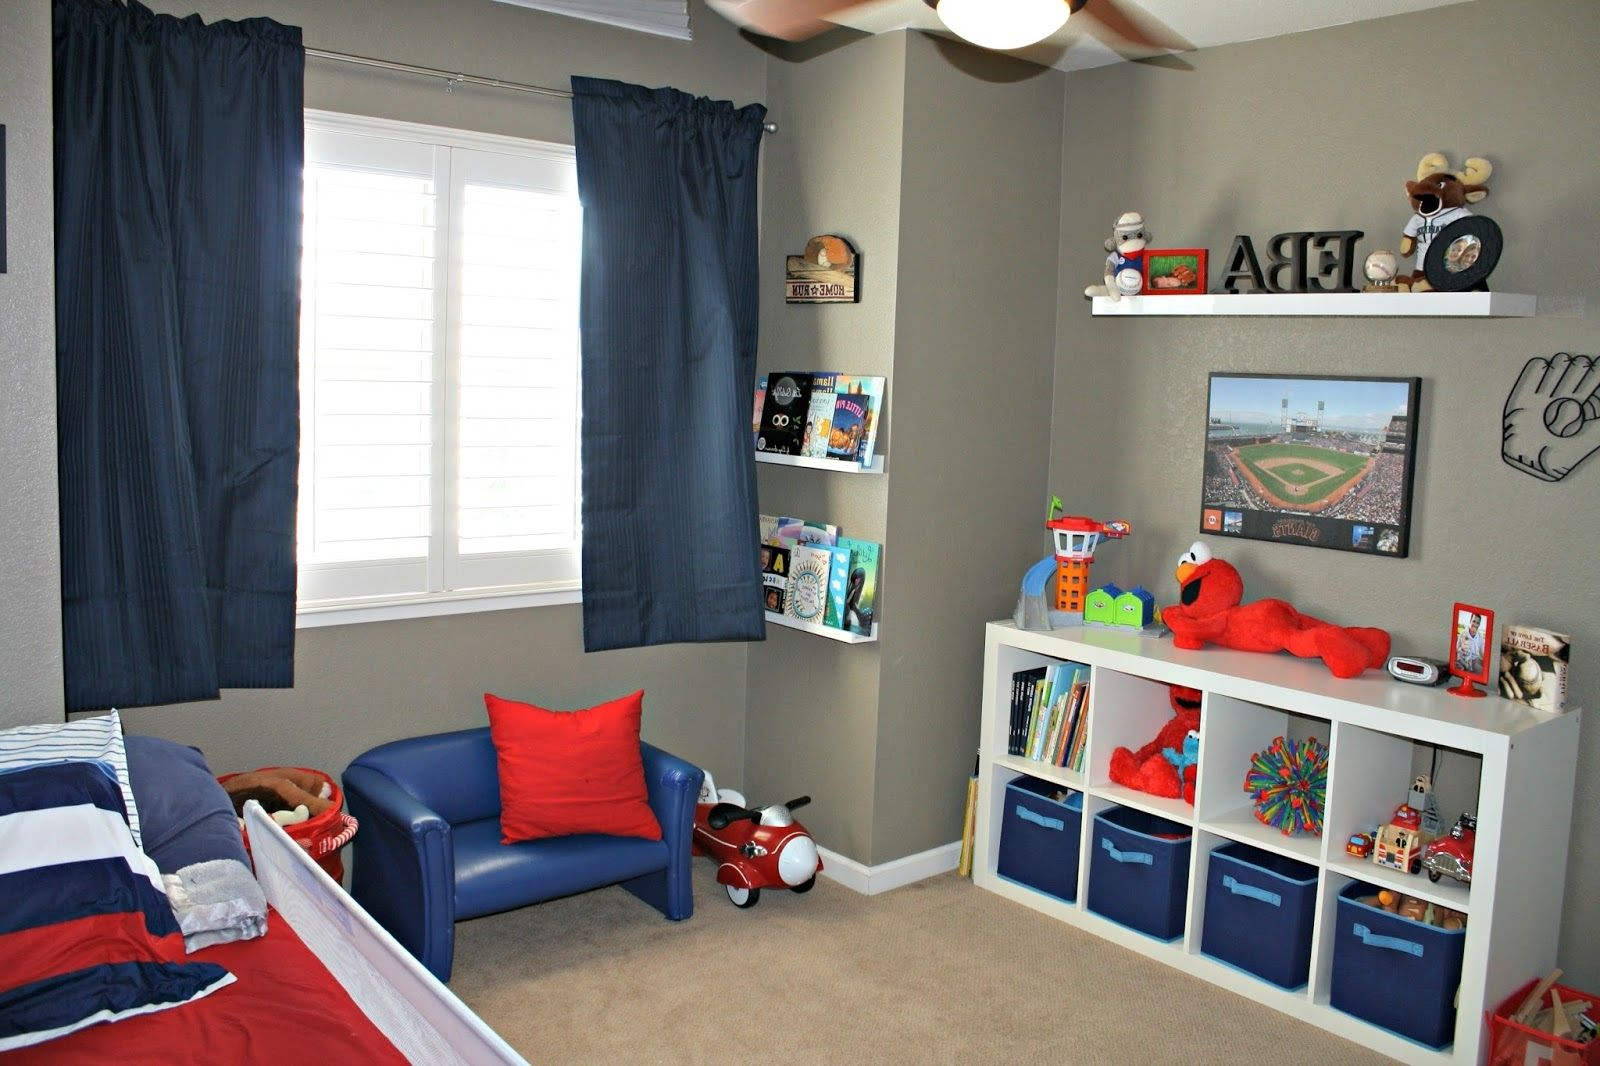 20 Boy Room Decorations Low Budget Bedroom Decorating Ideas Check More At Http Davidhyounglaw Com Boy Bedroom Design Boy Toddler Bedroom Toddler Boys Room